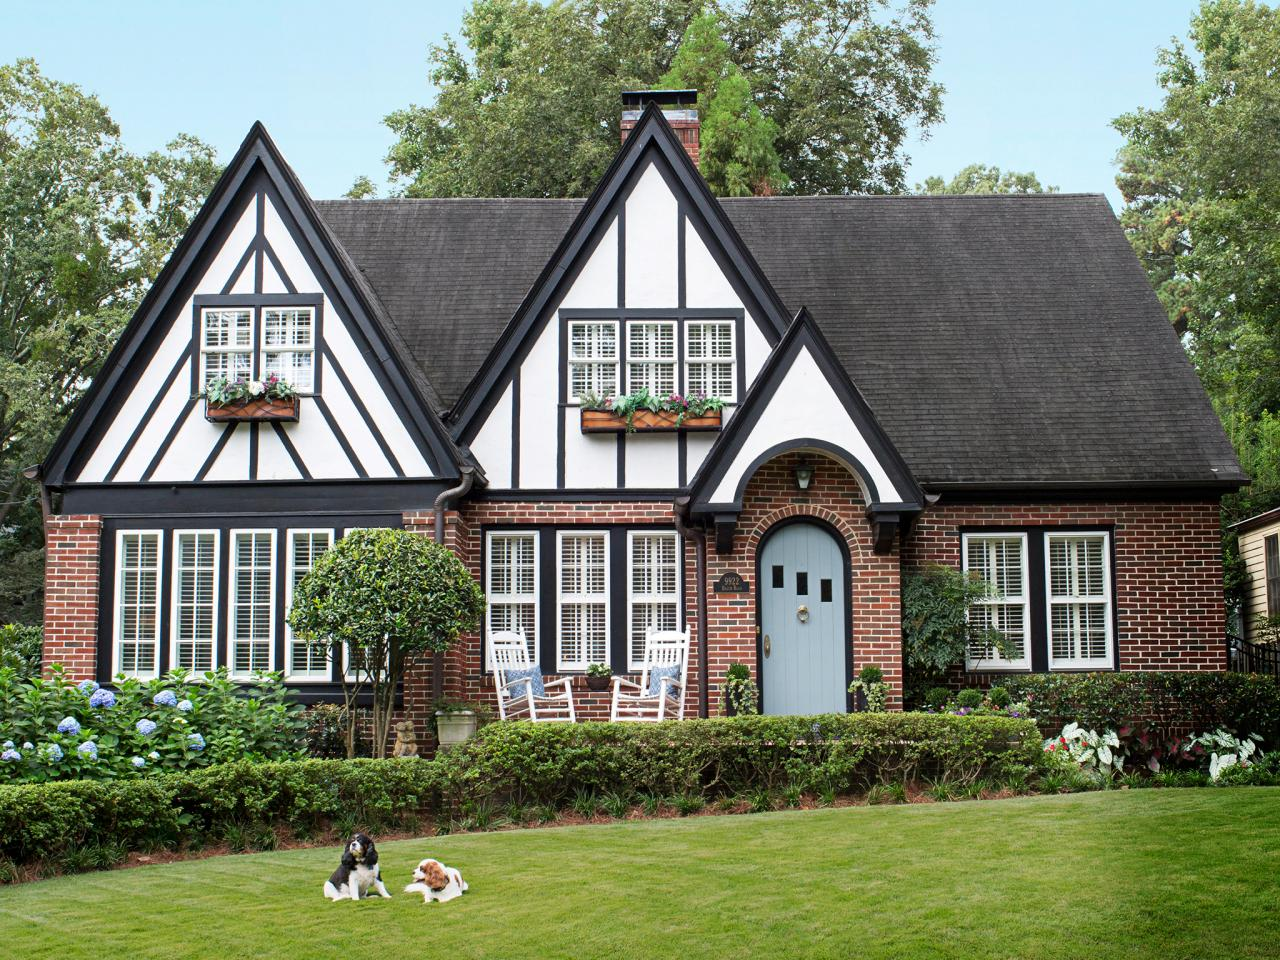 Exterior home decor ideas interior design styles and color schemes for home decorating hgtv for Exterior paint colors for tudor homes